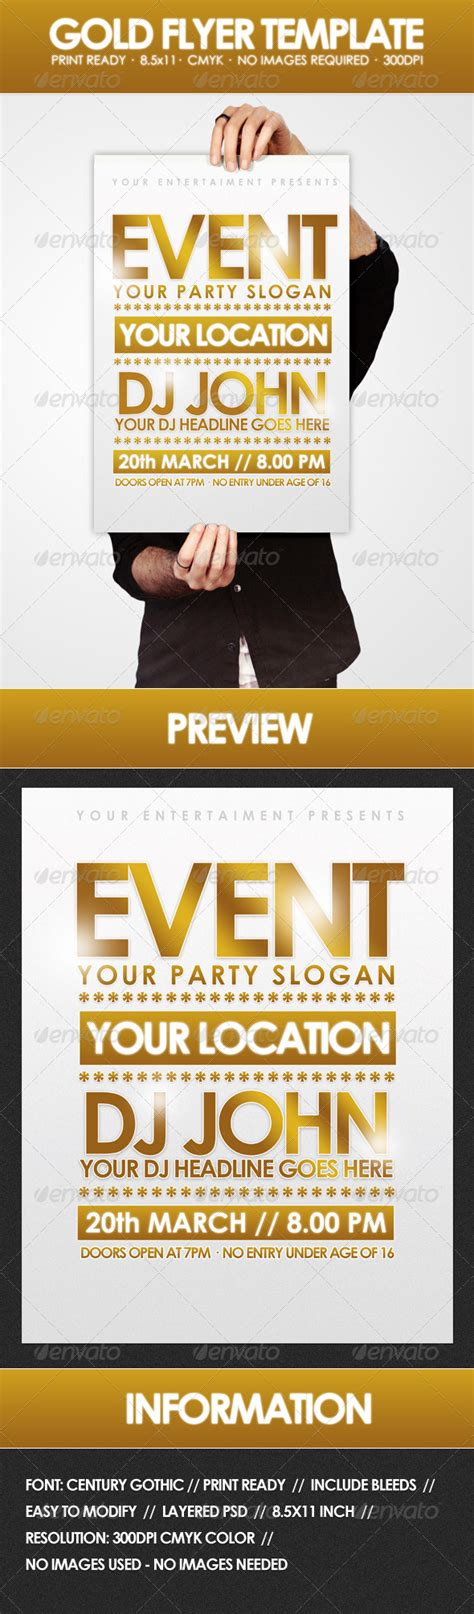 Black And Gold Flyer Template 187 Tinkytyler Org Stock Photos Graphics Gold Flyer Template